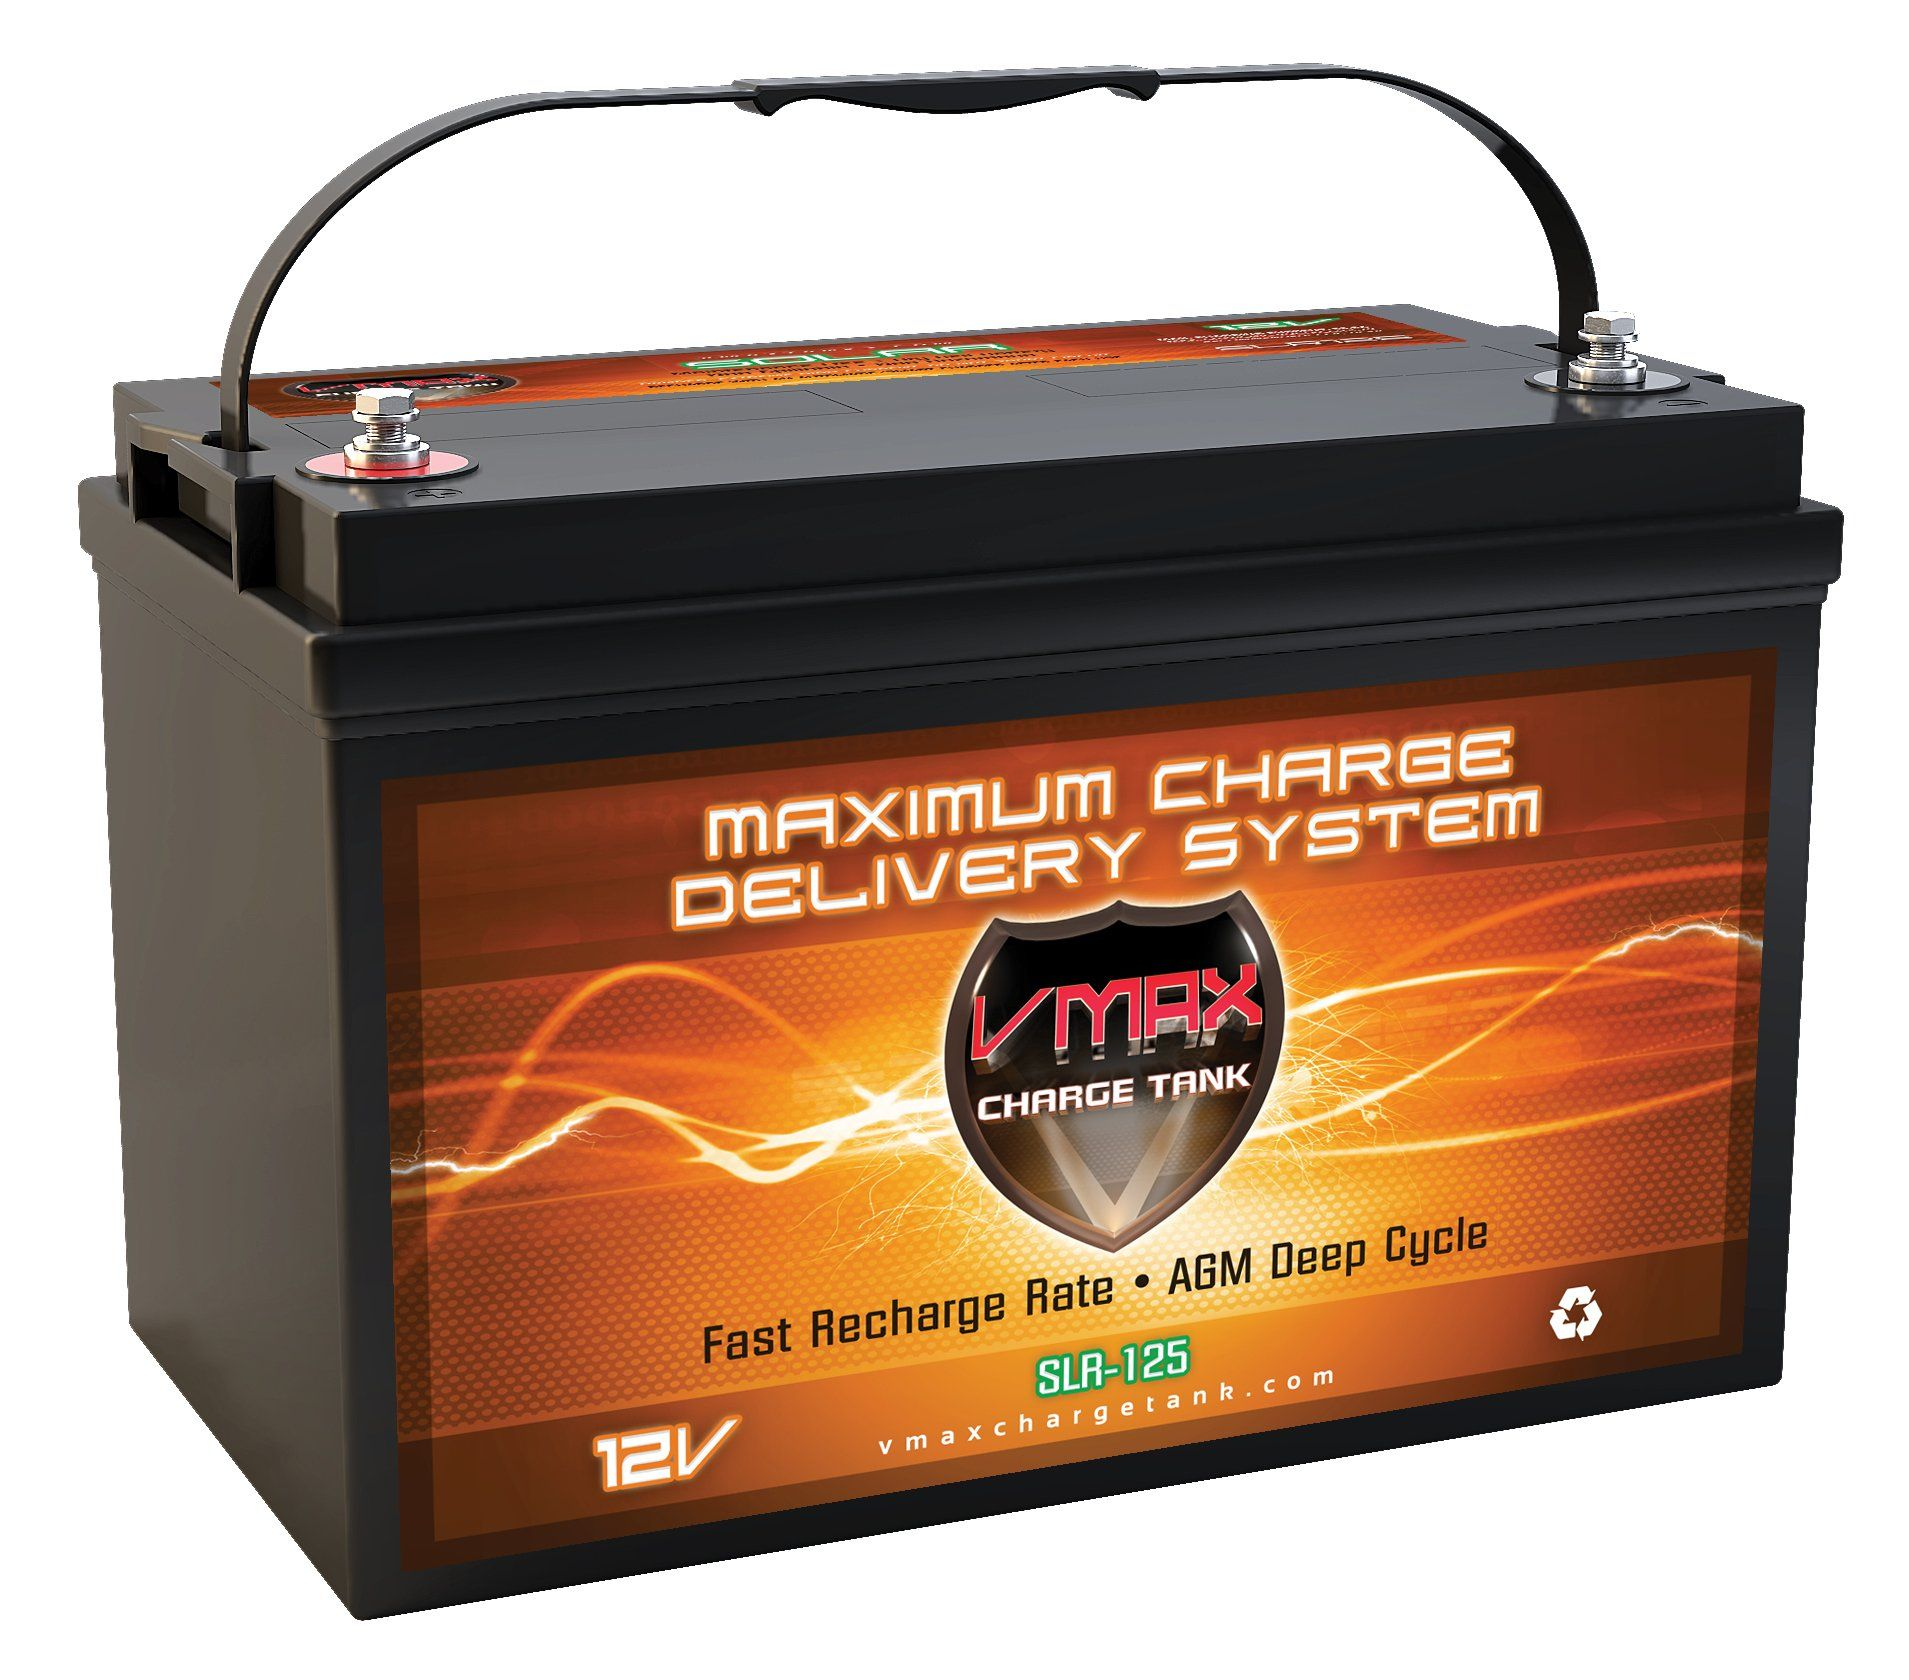 Vmaxtanks SLR125 AGM 12V 125ah Battery for Solar Wind Power